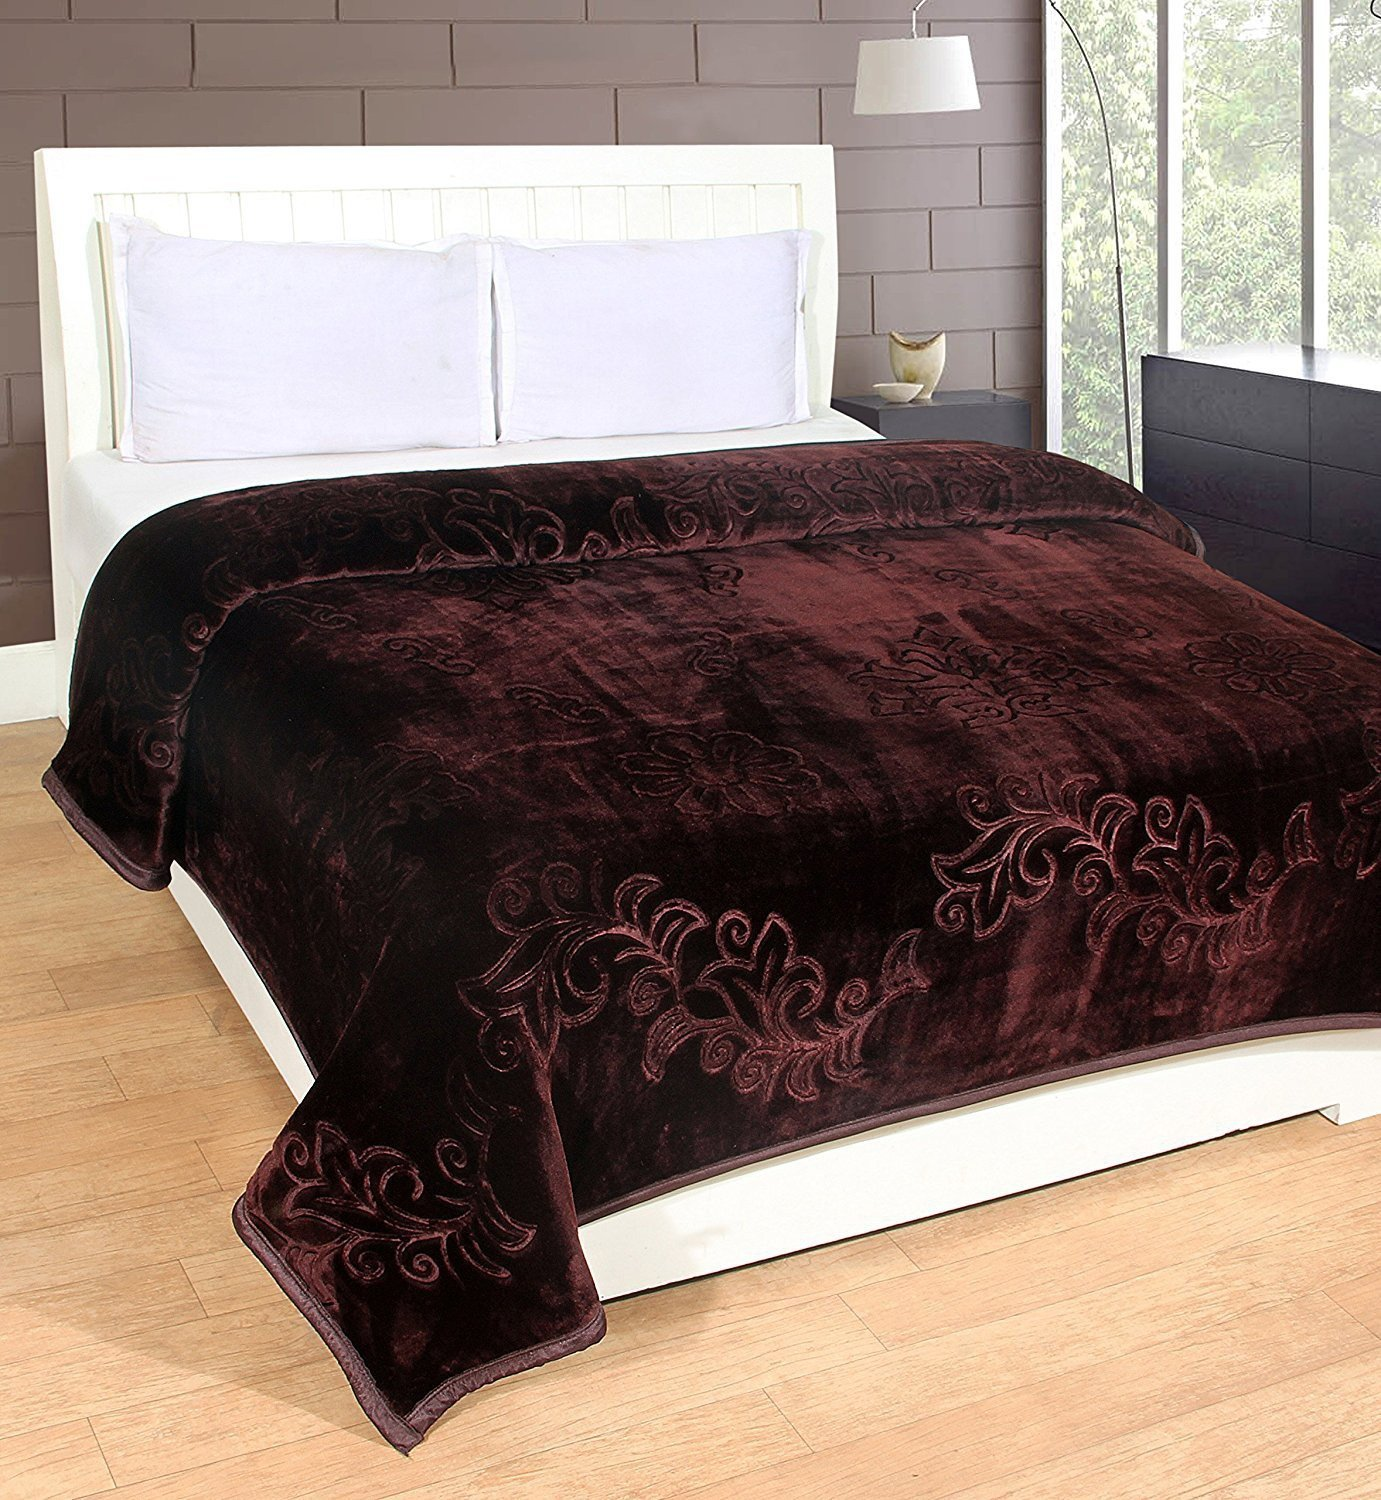 9ad41db9f9 Buy Global Home Brand New Blankets Double Bed Winter Soft Floral Embossed  (Gold Color) - Blanket Bag Online at Low Prices in India - Amazon.in